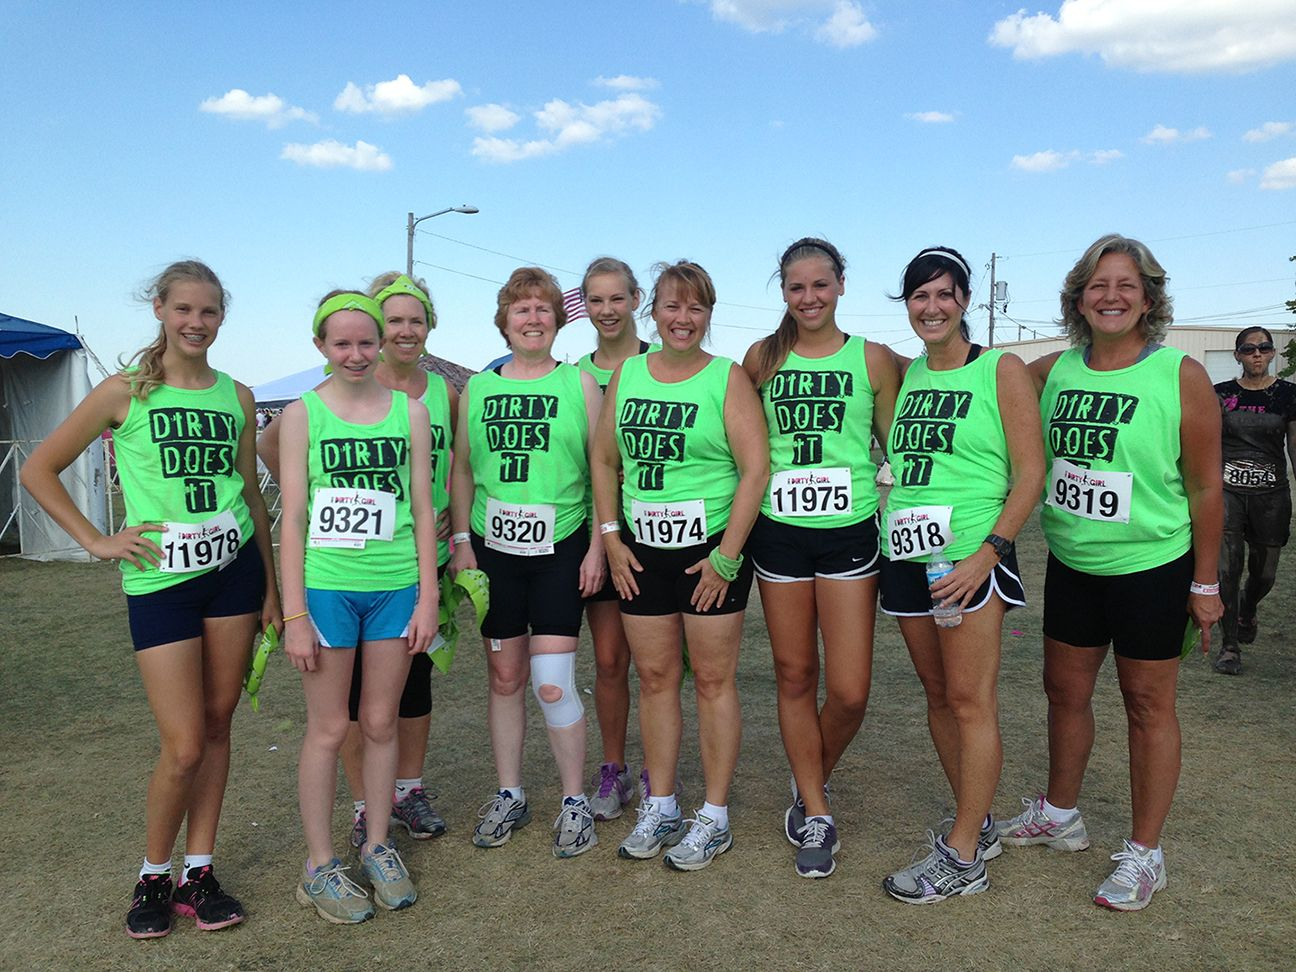 did you know that mud run matching team outfits are highly